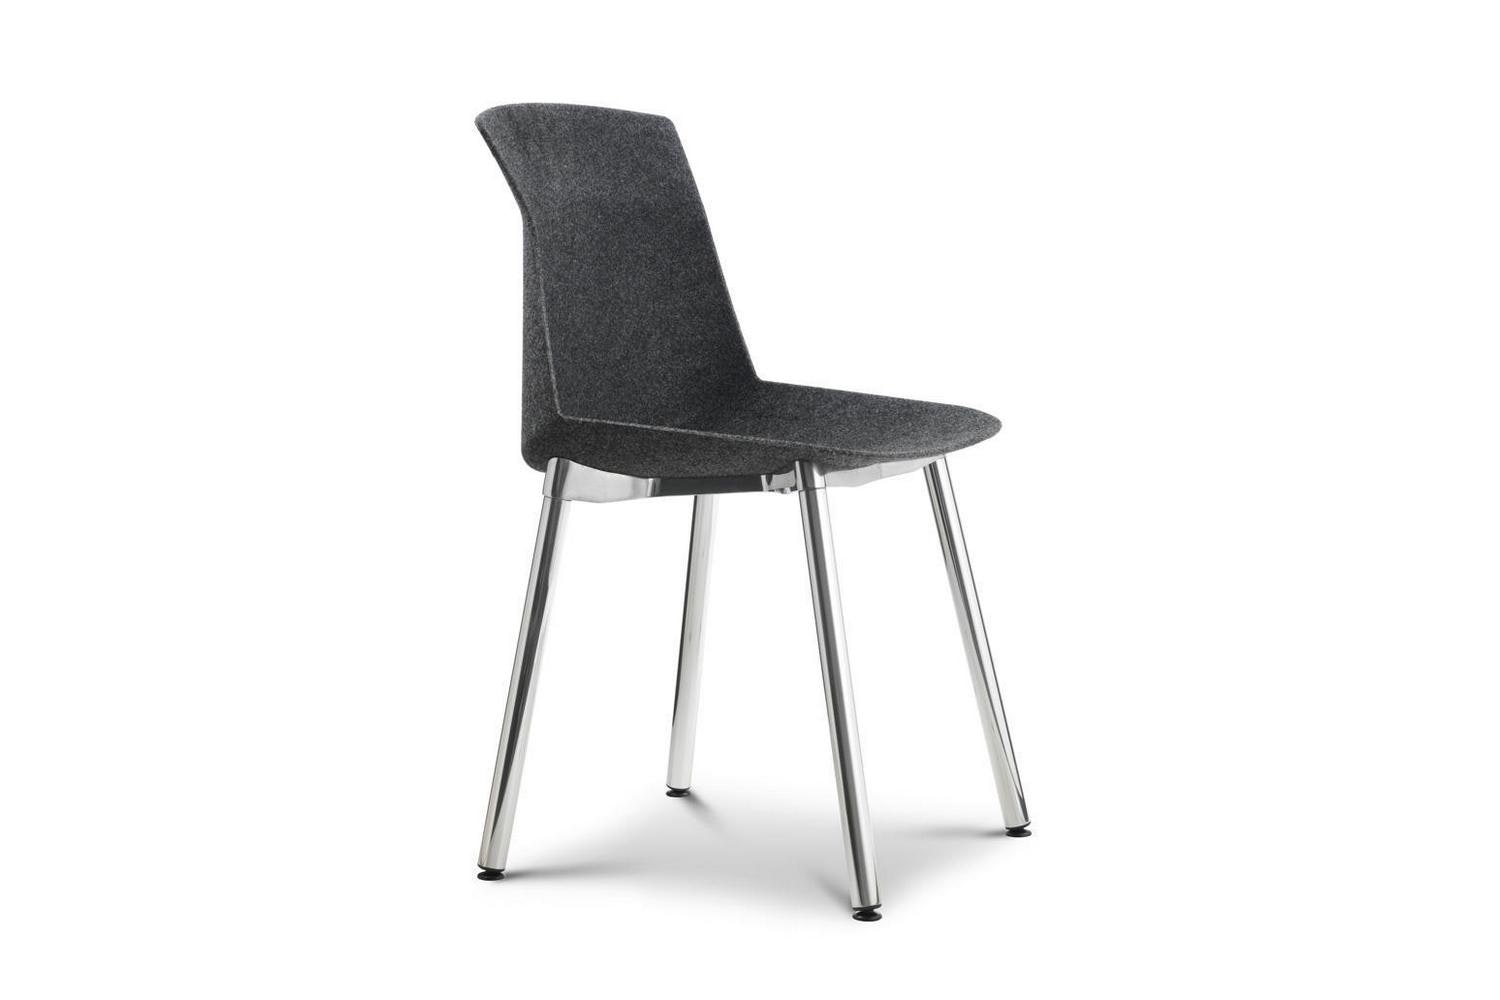 383-384 Motek Chair by Luca Nichetto for Cassina